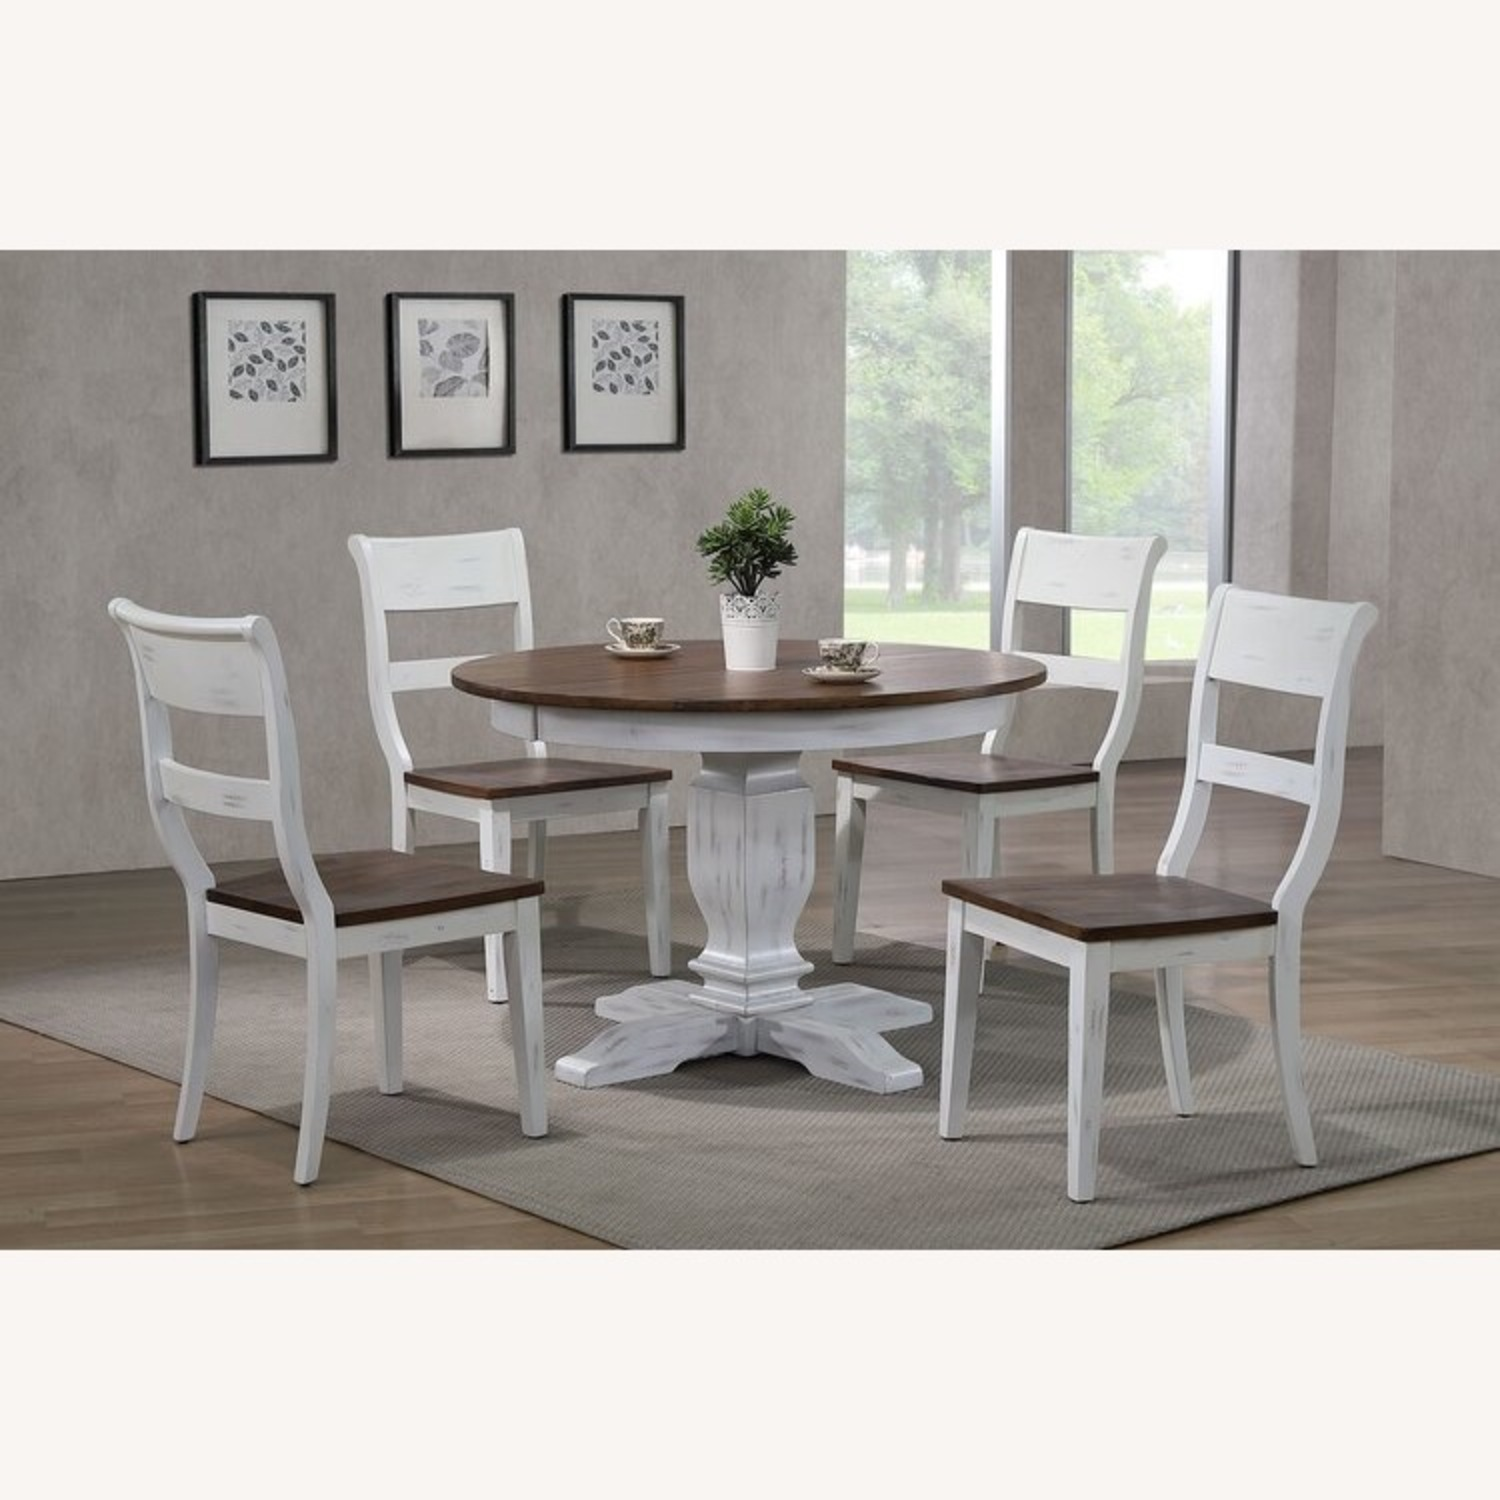 Solid Wood Extension Table with 4 Chairs - image-2